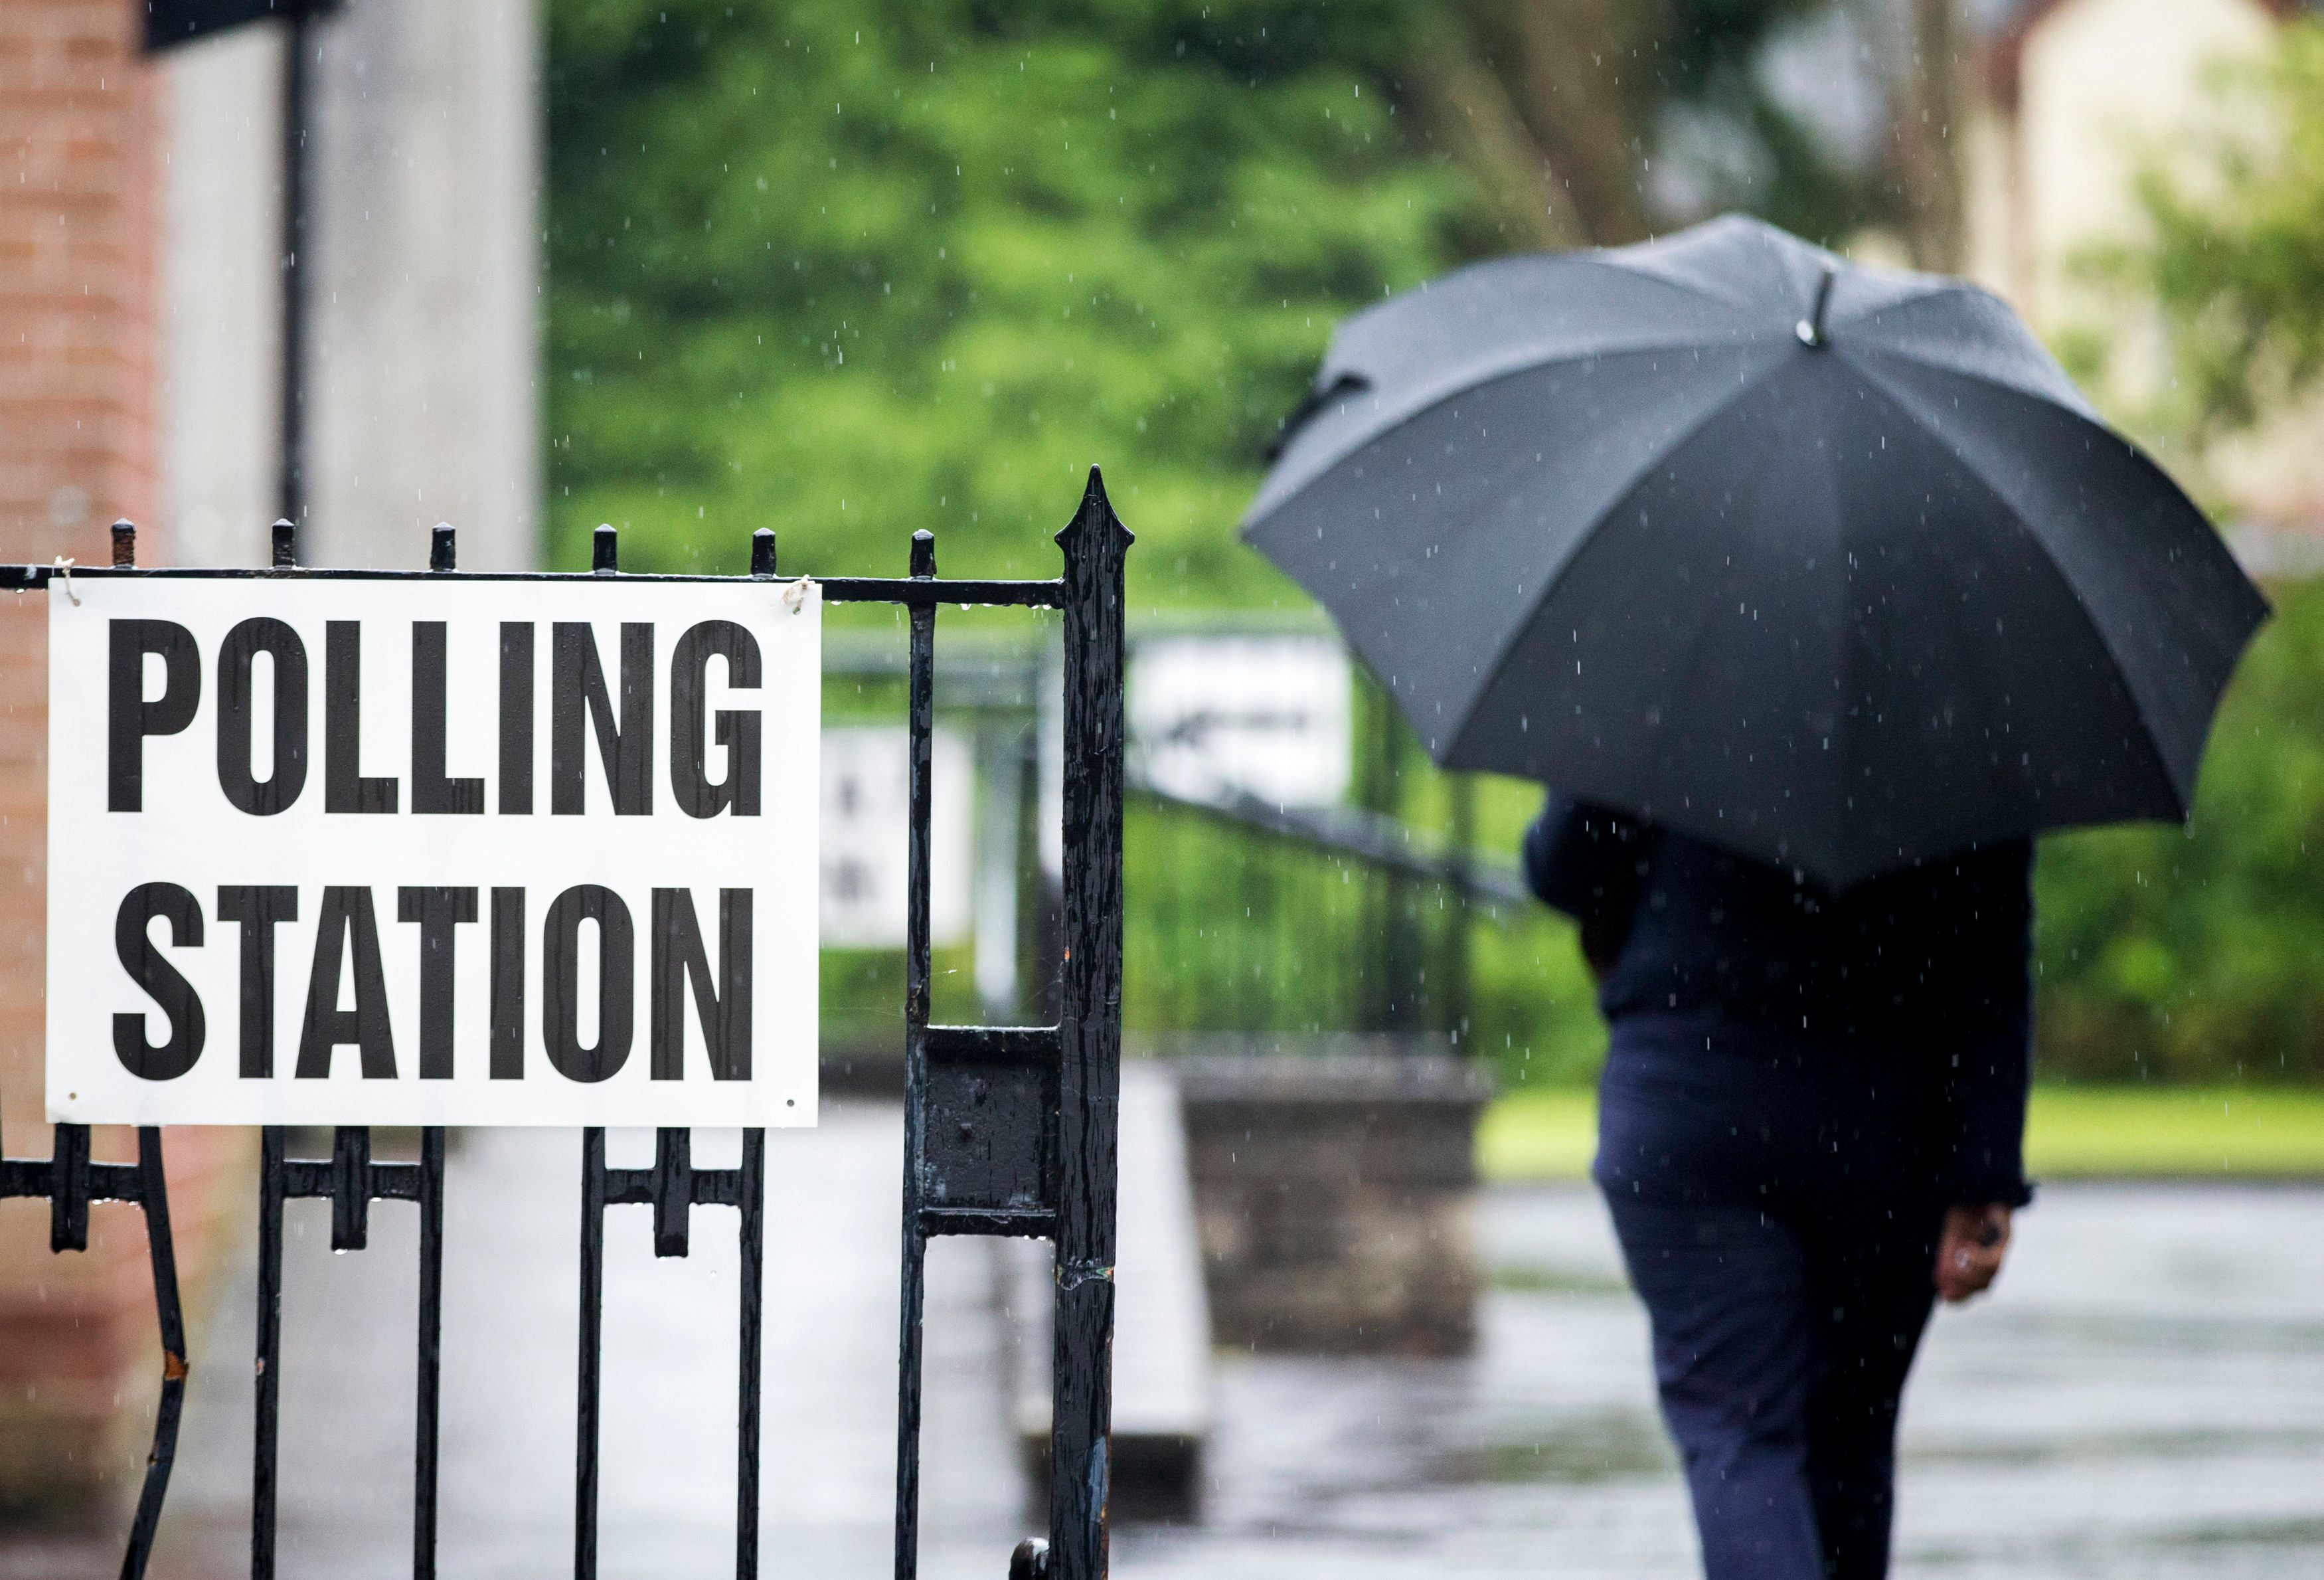 Gunman At Polling Station In Northern Ireland 'Making Threats' - Reports